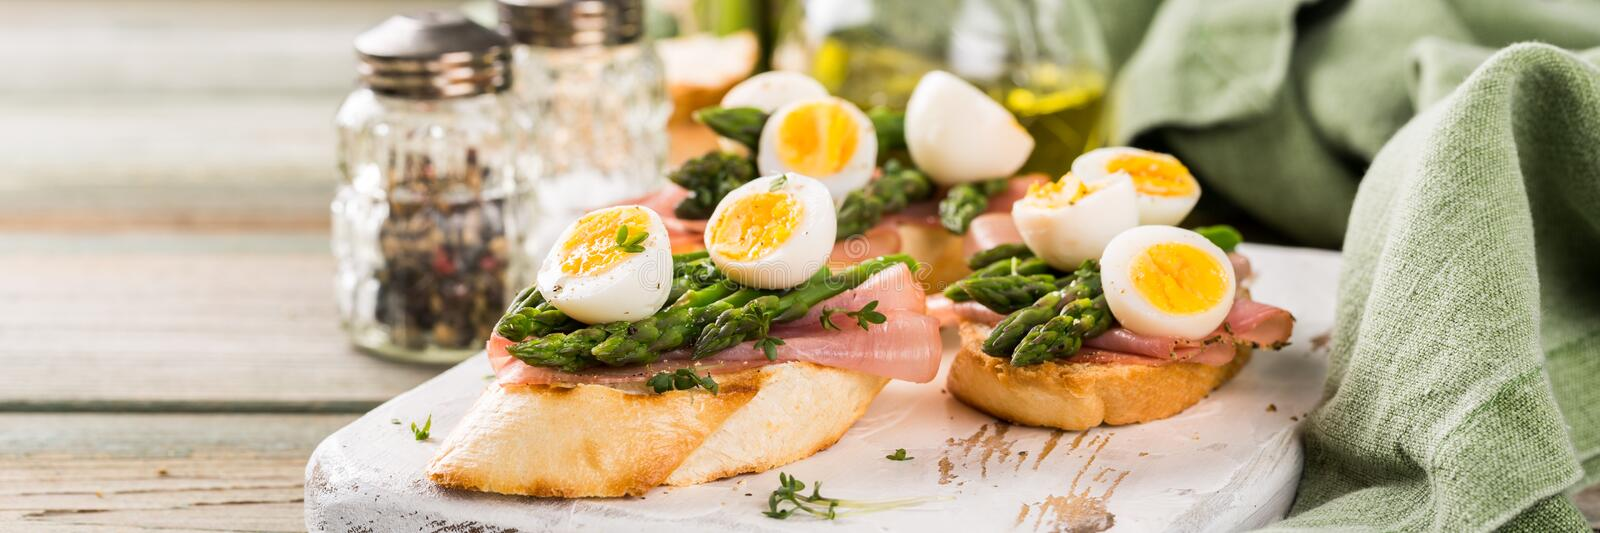 Fresh sendwich with ham, asparagus and quail eggs royalty free stock image